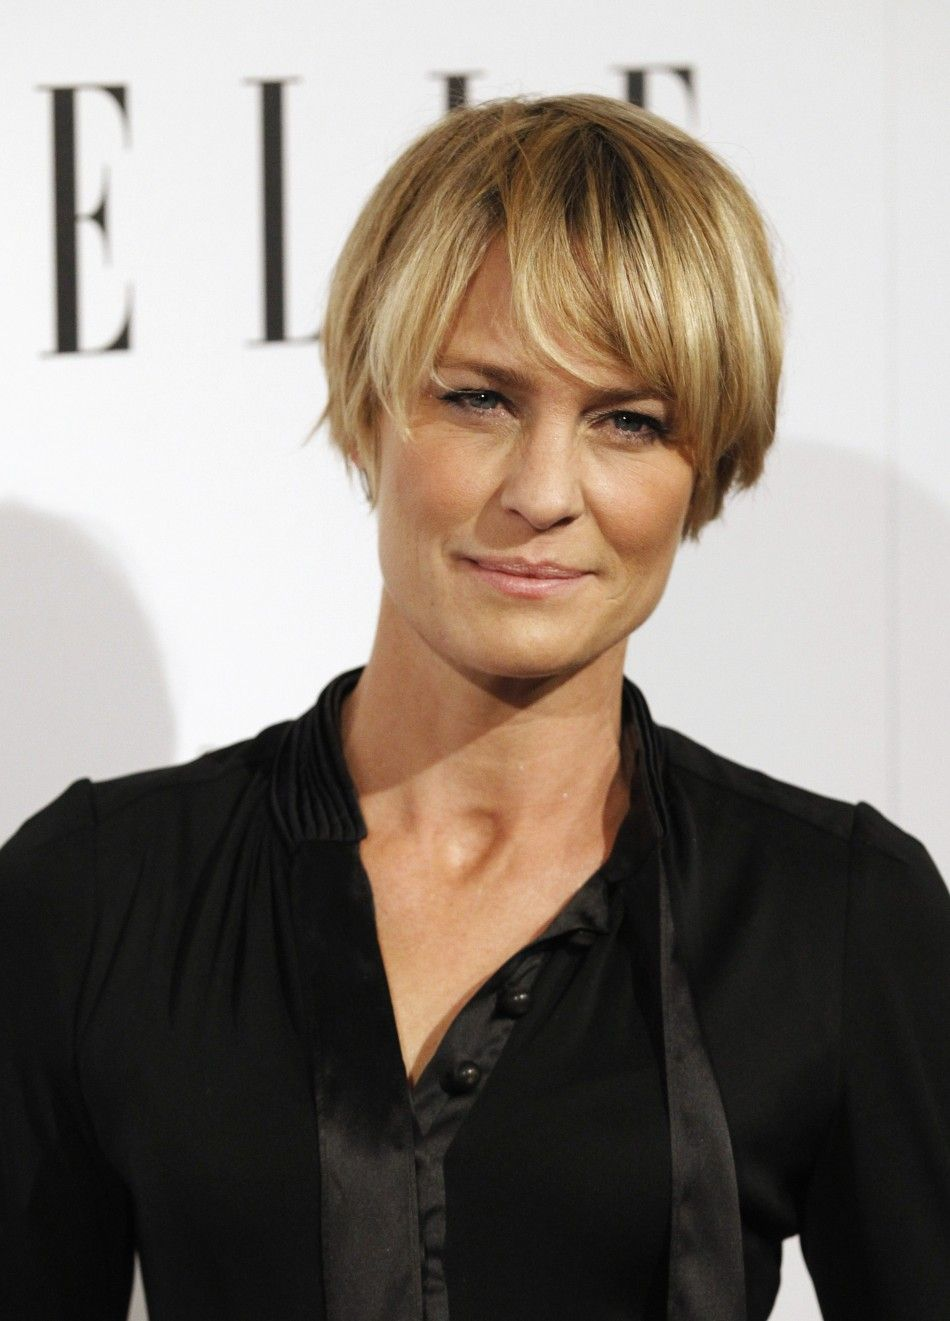 pin by jamie :) on portraits in 2019 | robin wright haircut